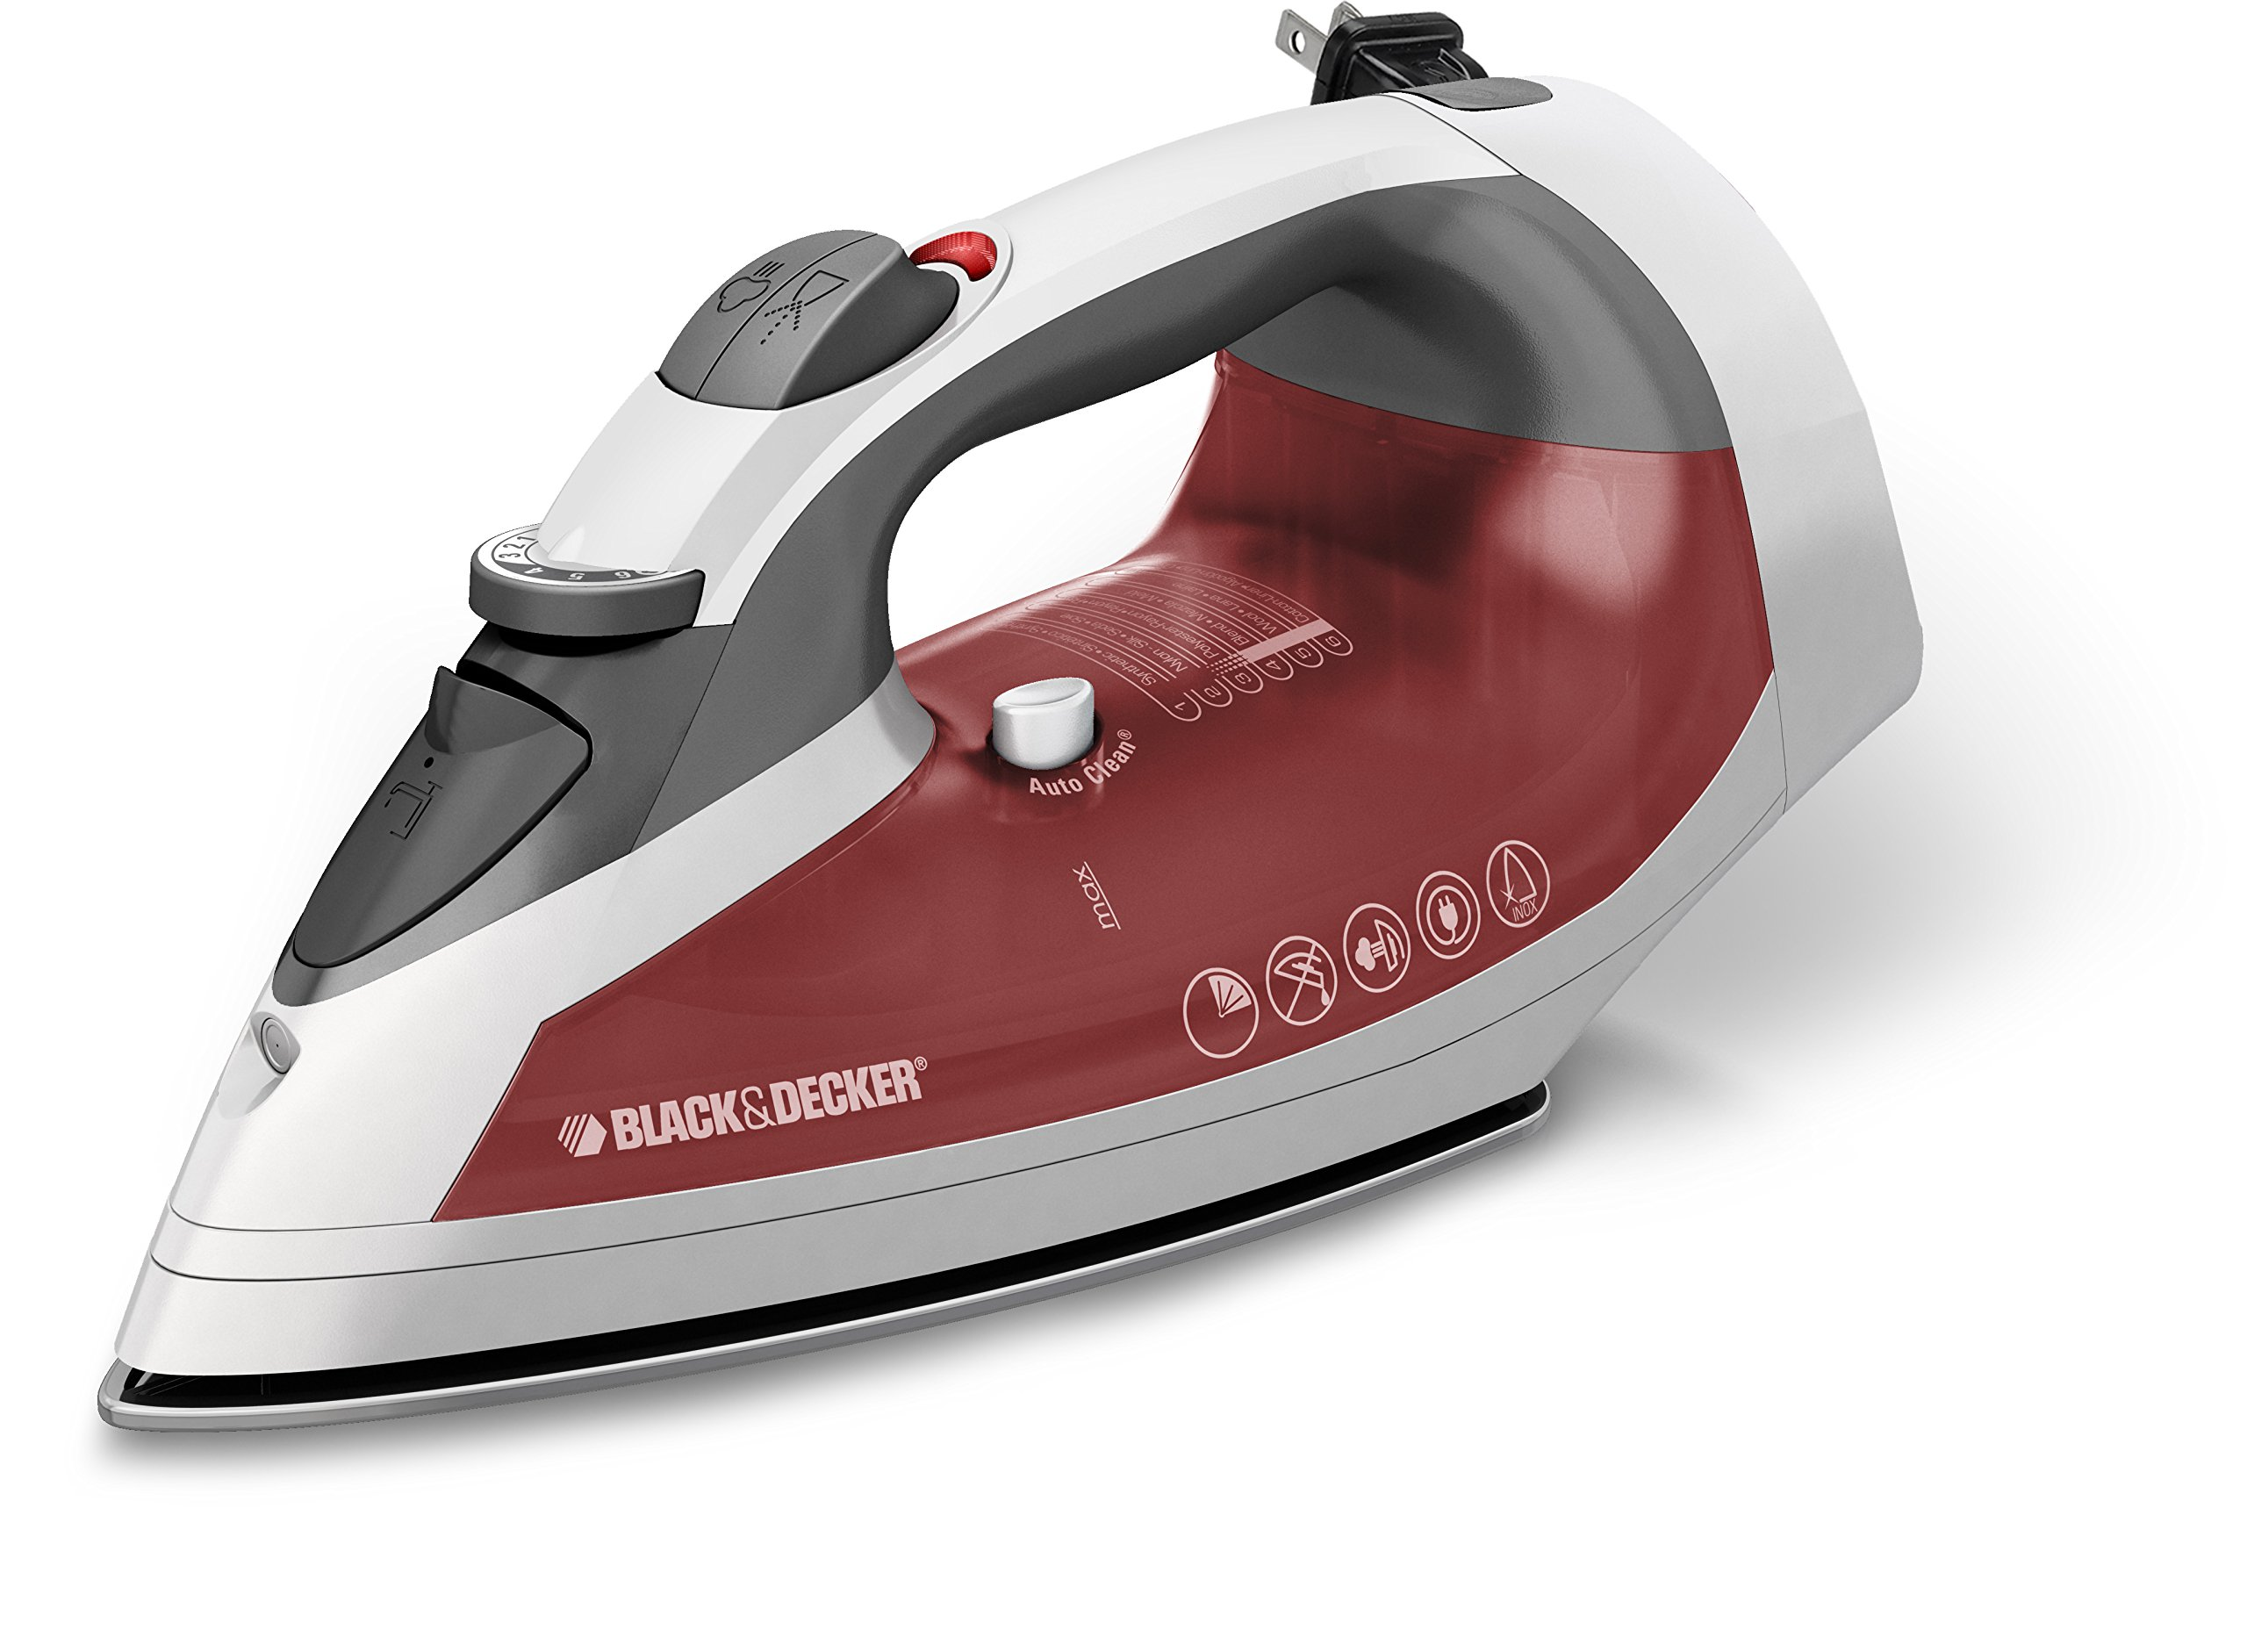 BLACK+DECKER ICR07X Xpress Steam Cord Reel Iron, White/Red